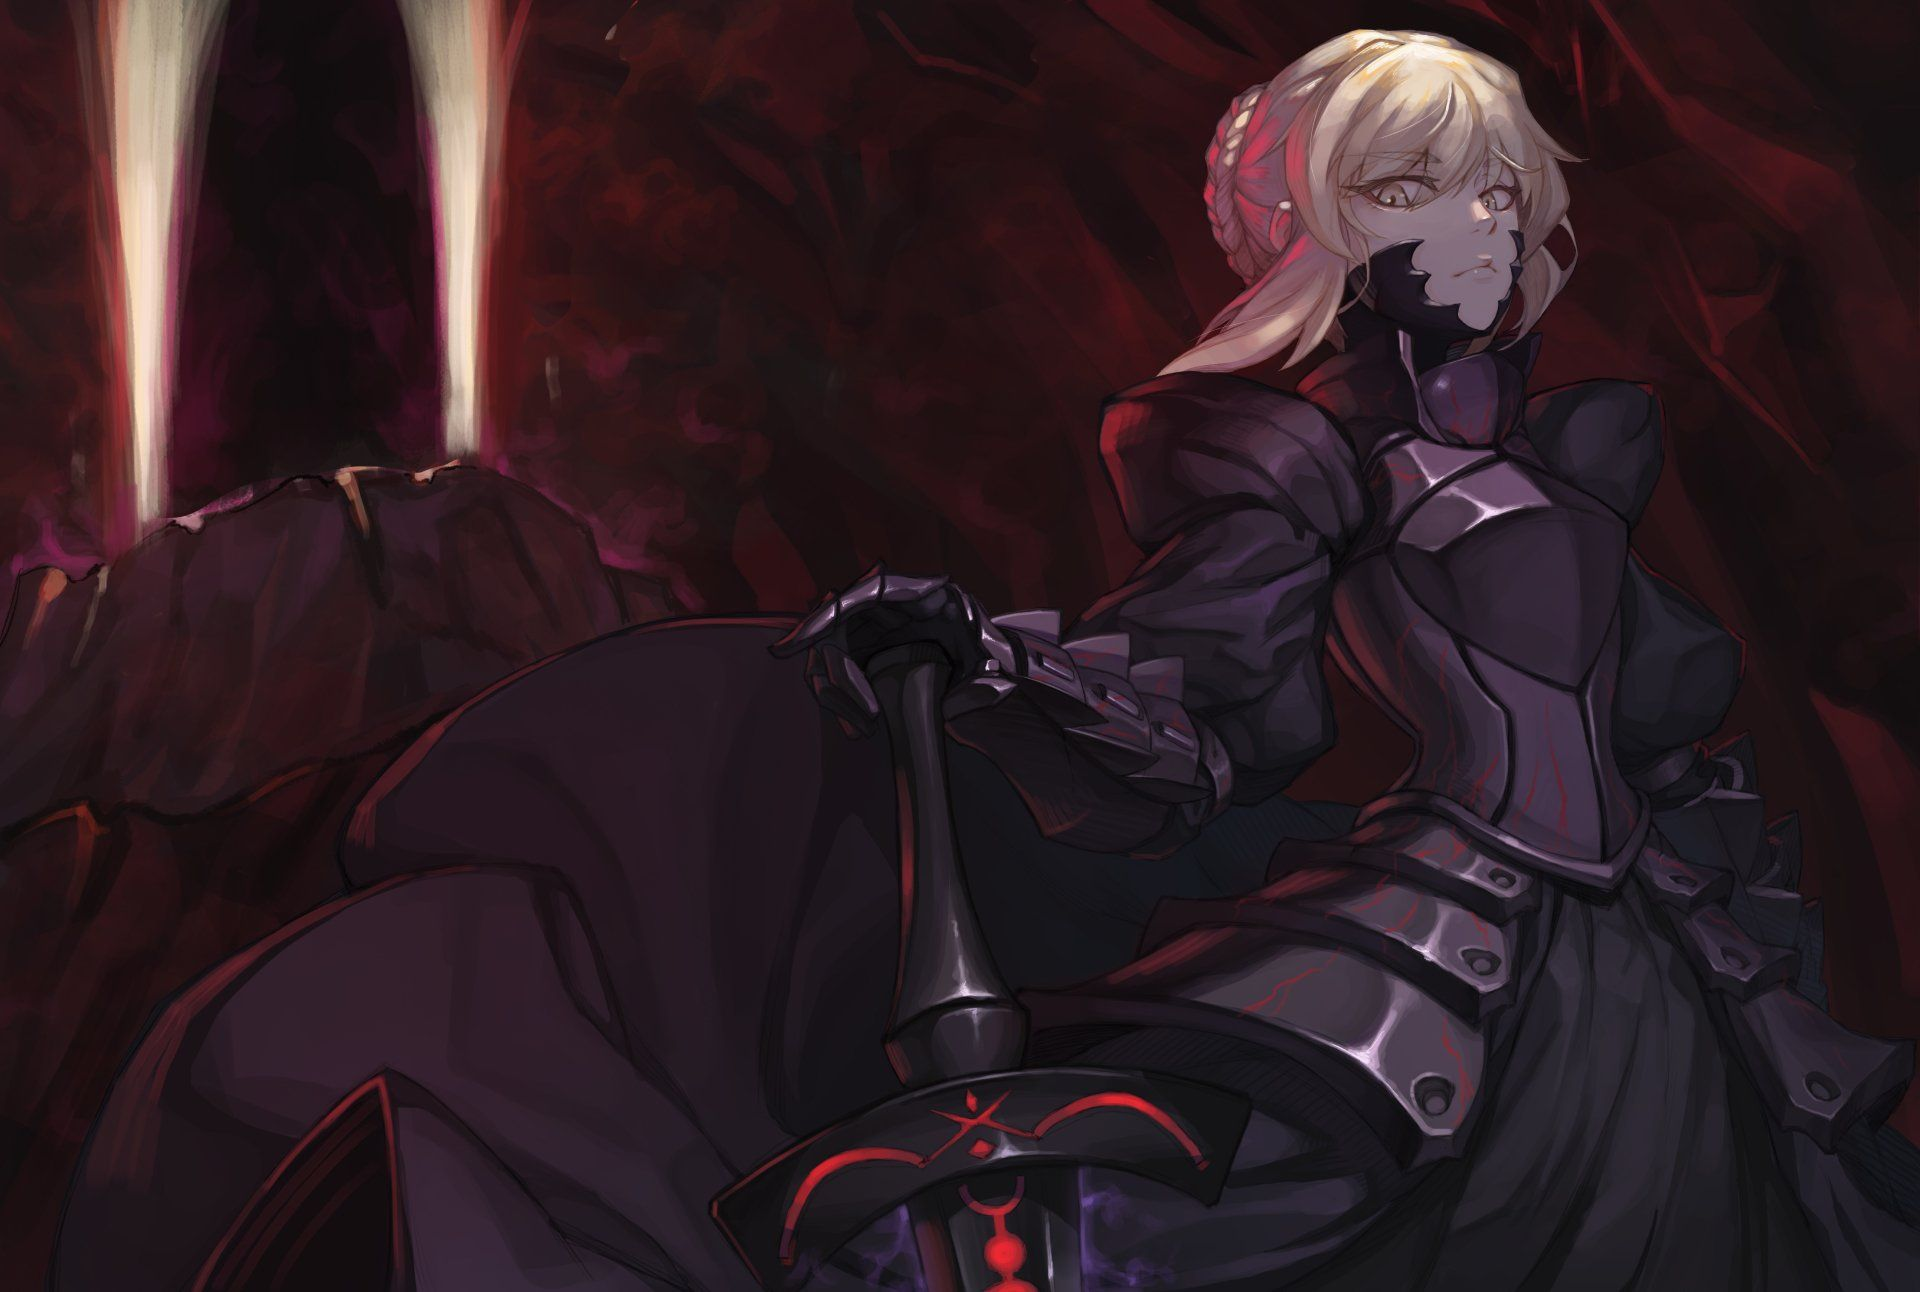 Saber Alter Wallpapers Top Free Saber Alter Backgrounds Wallpaperaccess